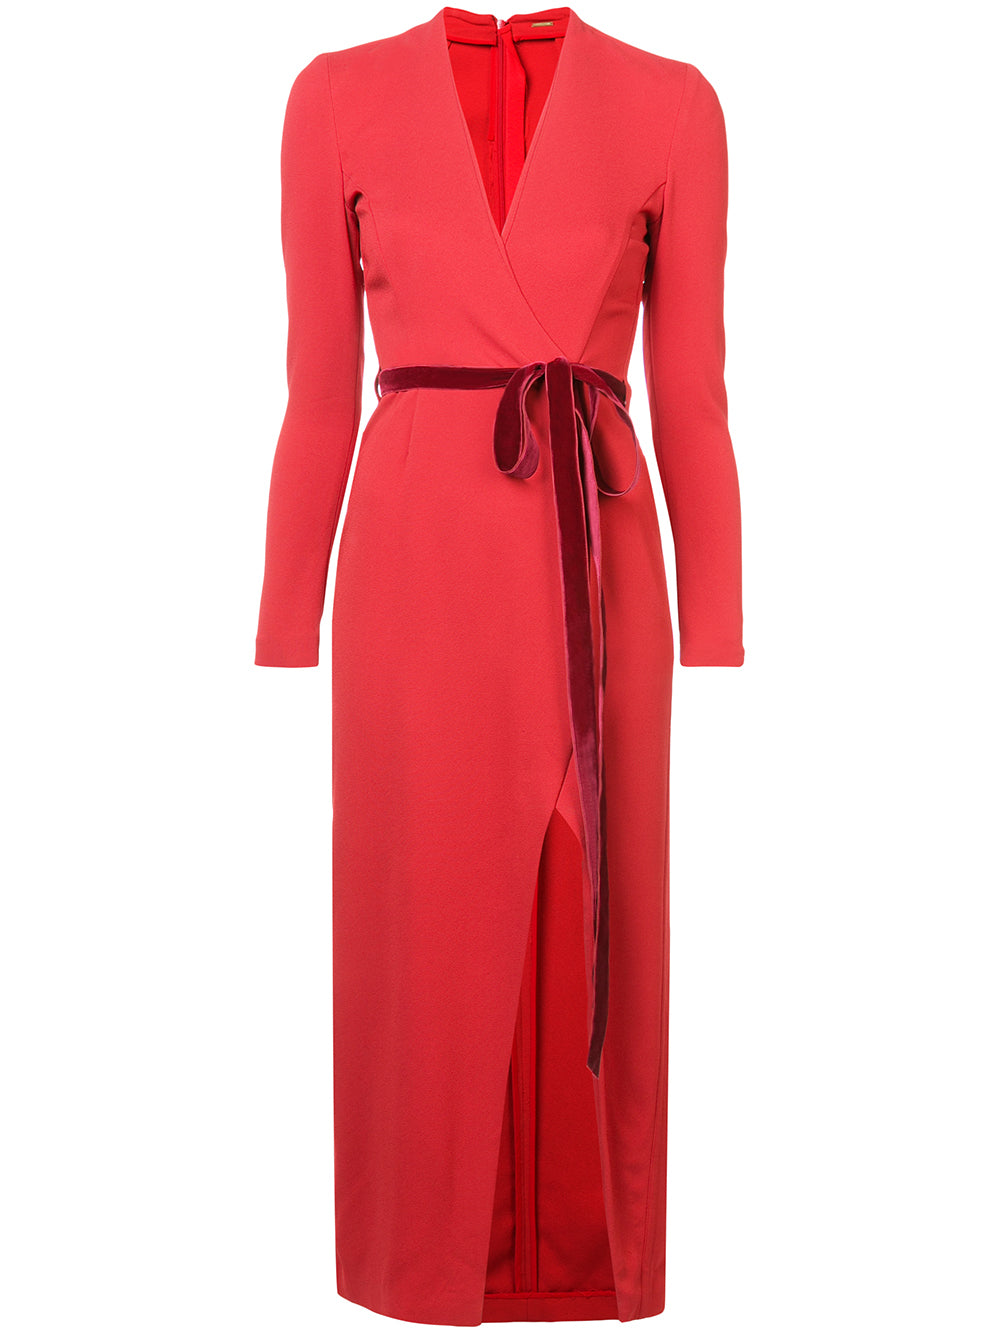 STRETCH CREPE LONG SLEEVE MIDI WRAP DRESS WITH VELVET RIBBON BELT